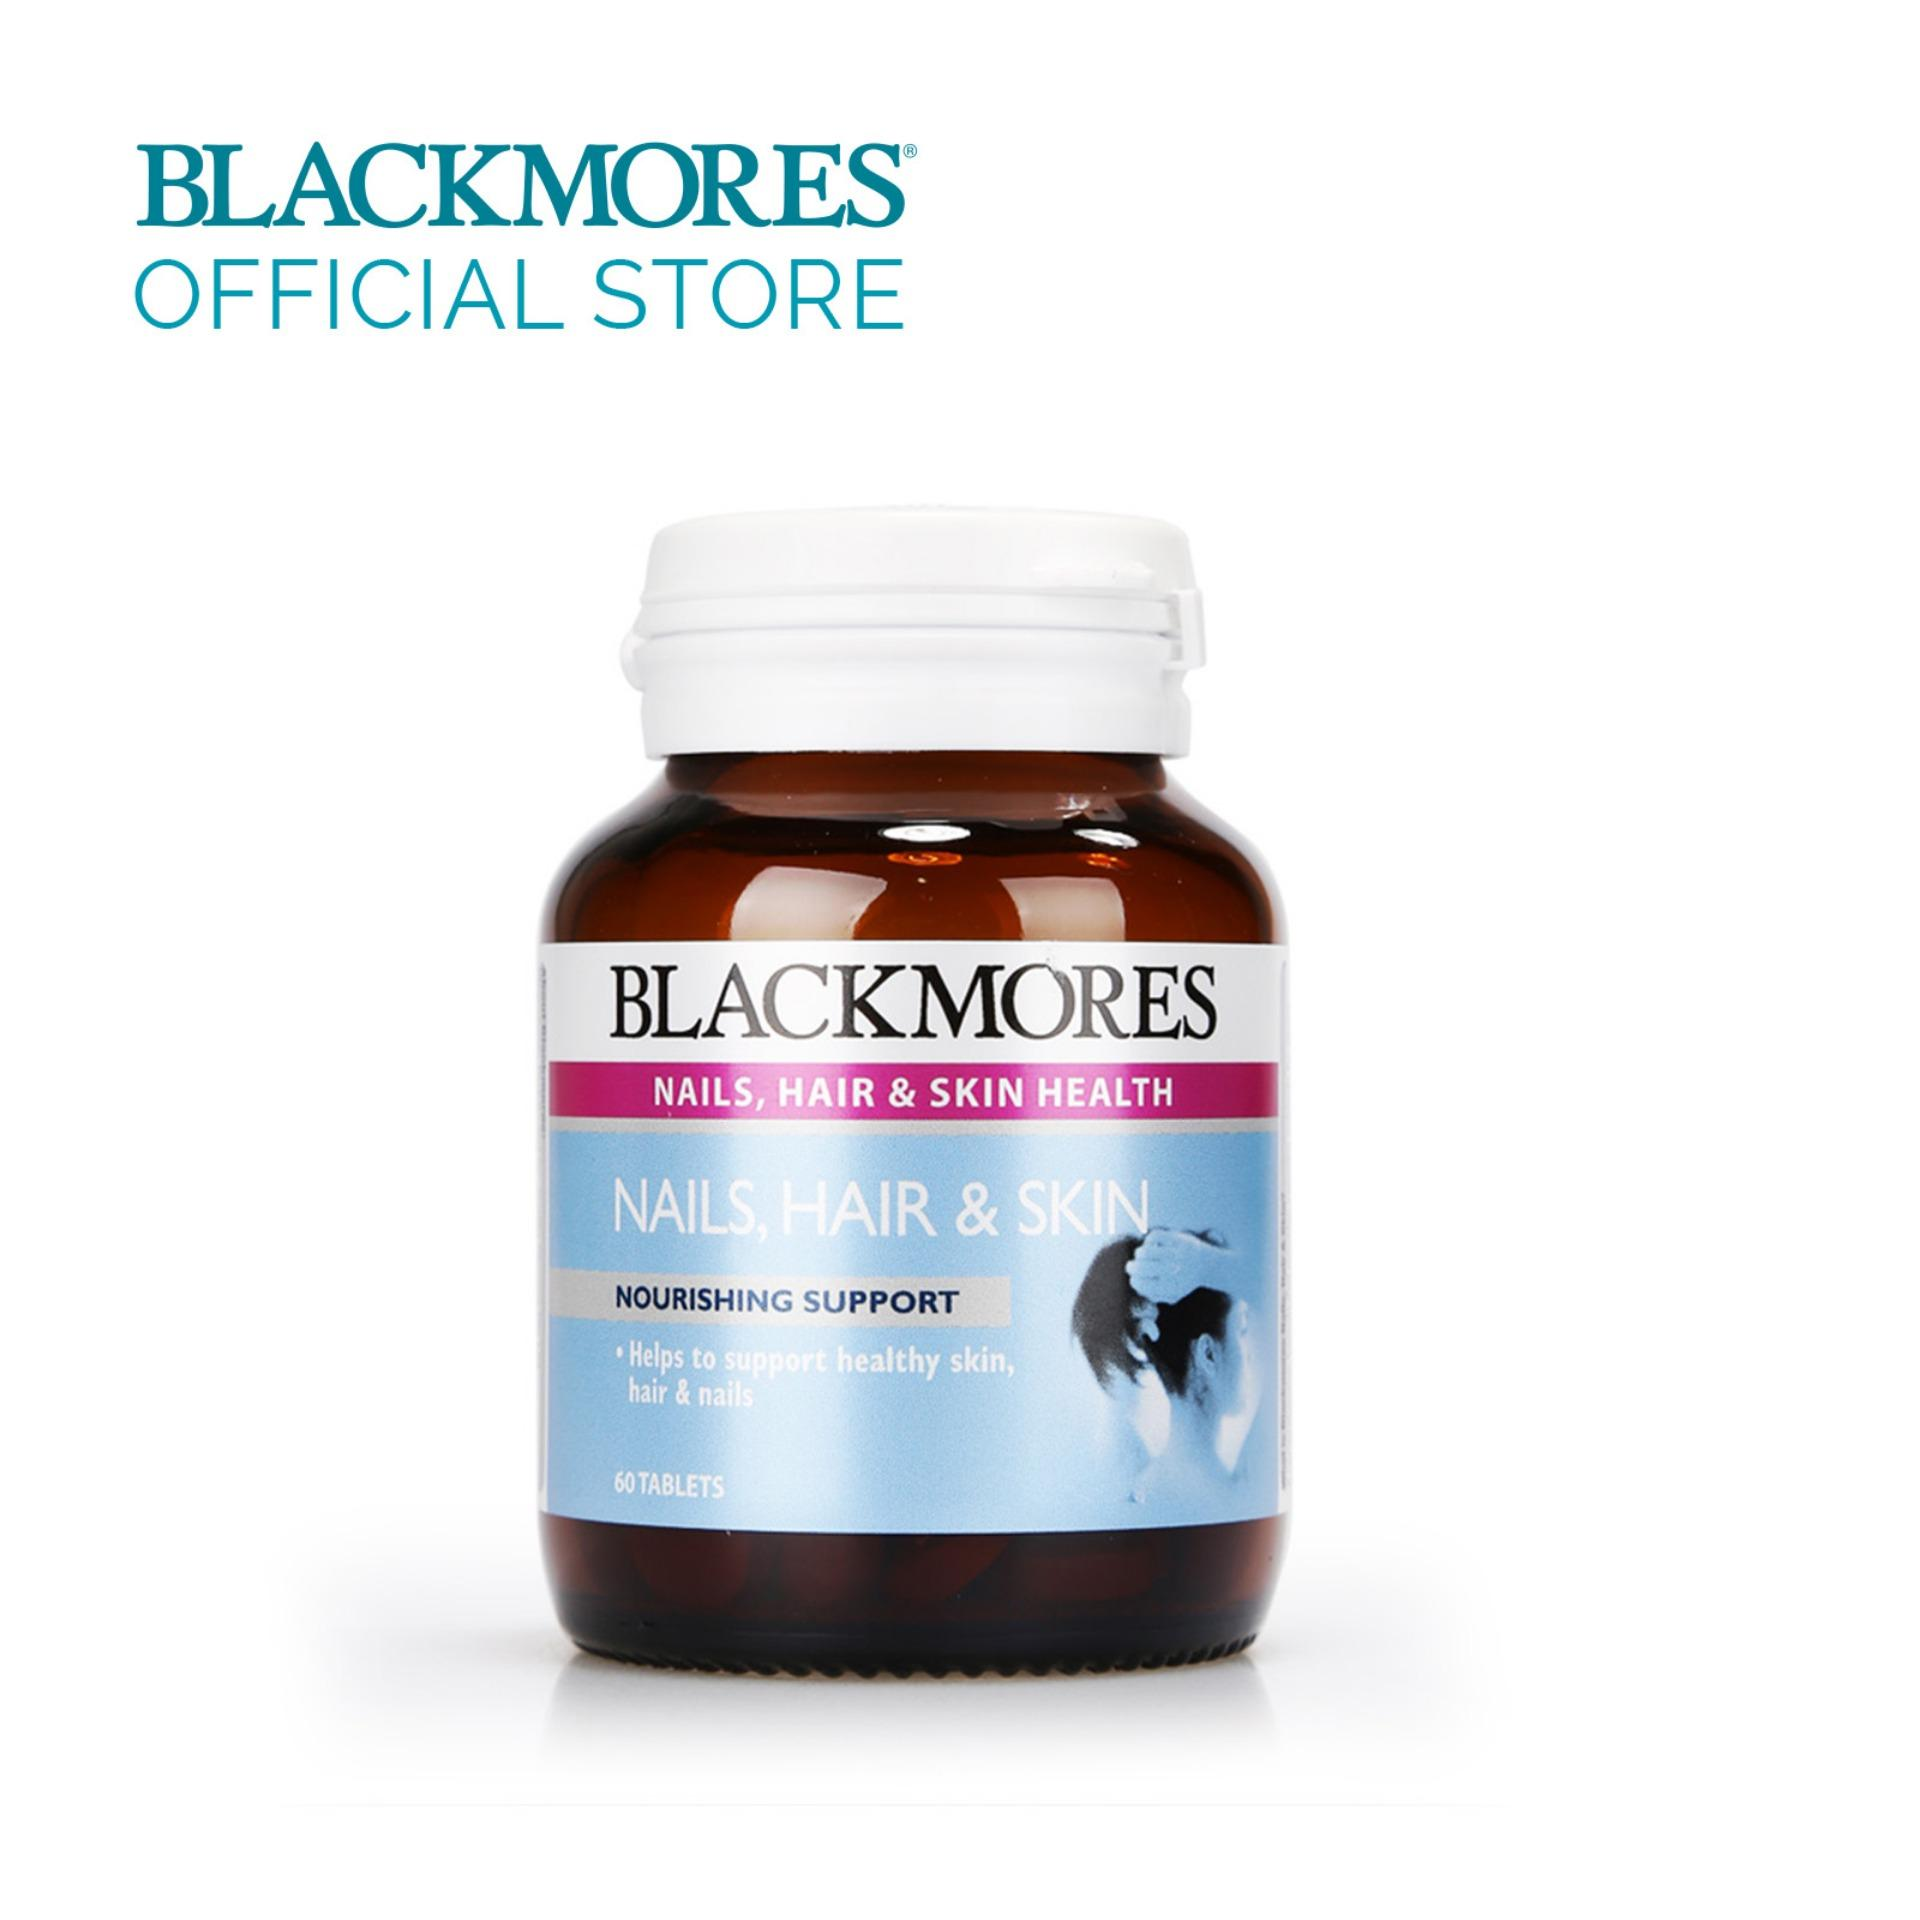 Blackmores Nails,hair & Skin 60tabs By Blackmores Official Store.